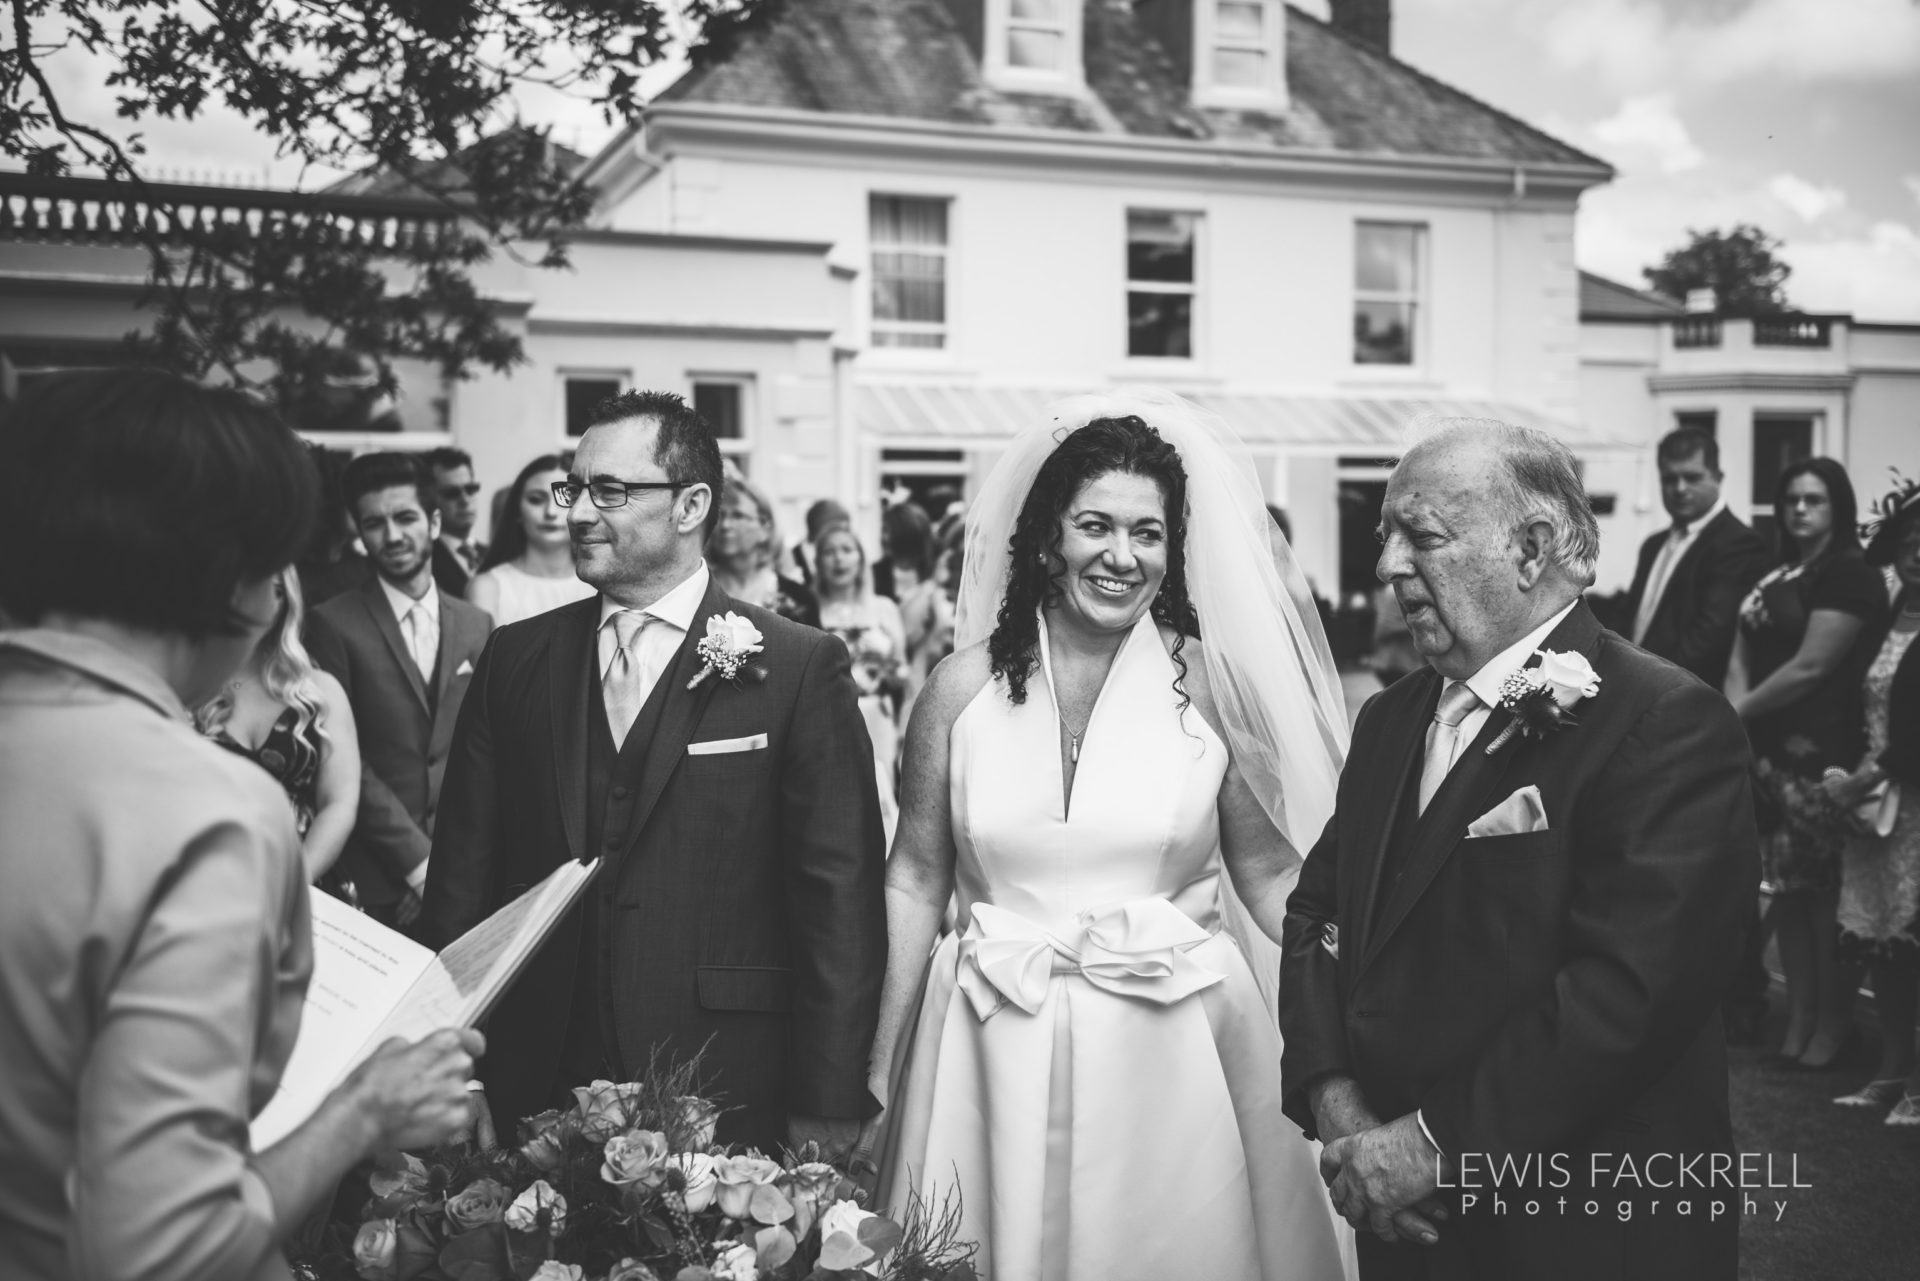 Lewis-Fackrell-Photography-Wedding-Photographer-Cardiff-Swansea-Bristol-Newport-Pre-wedding-photoshoot-Rhian-Mark-Mansion-House-Llansteffan-Carmarthenshire--30